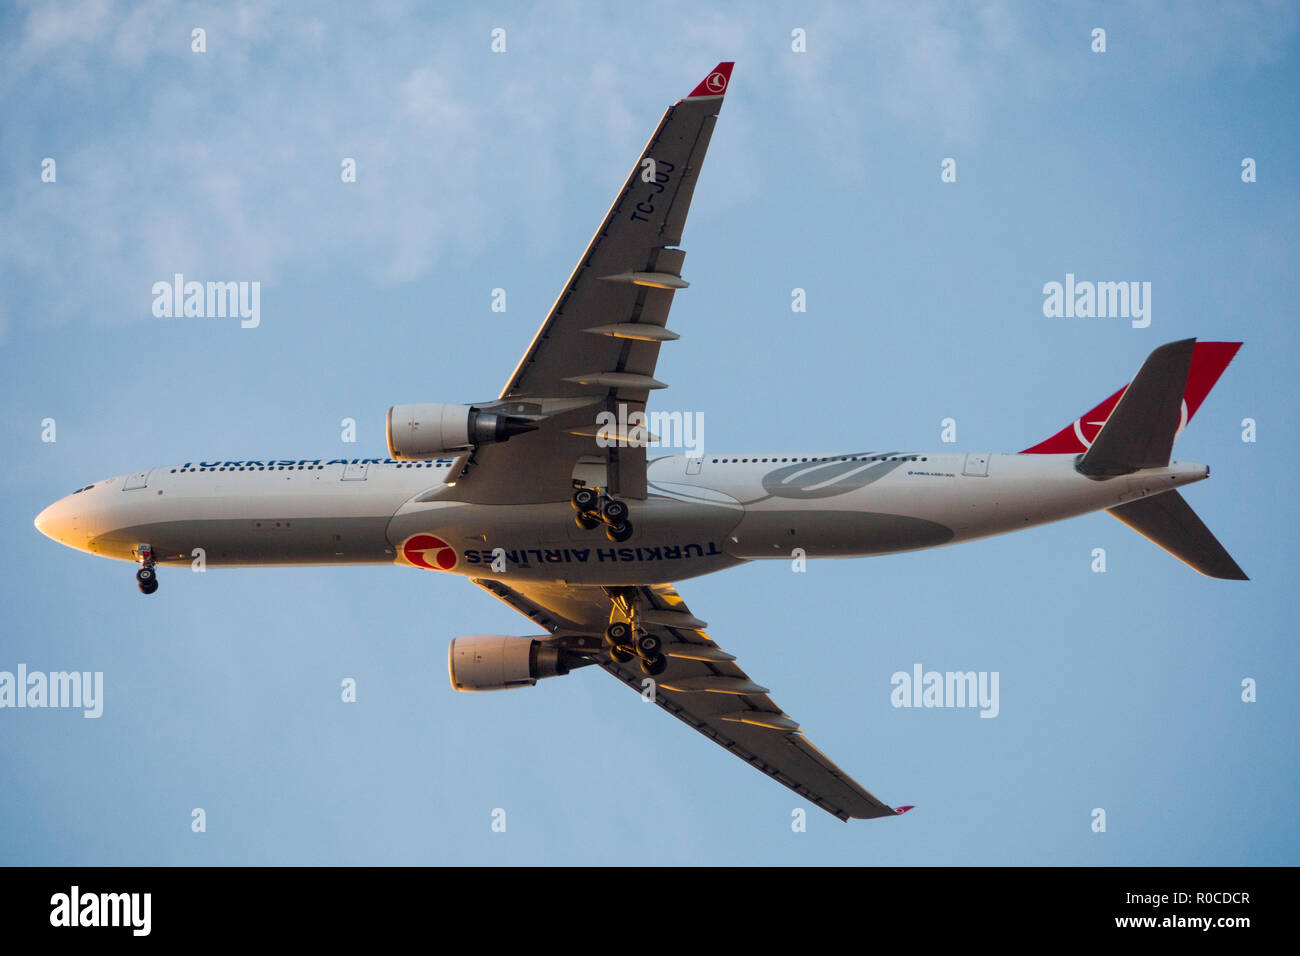 Turkish Airlines Airbus A330-300 aircraft in sky over Istanbul, Turkey - Stock Image